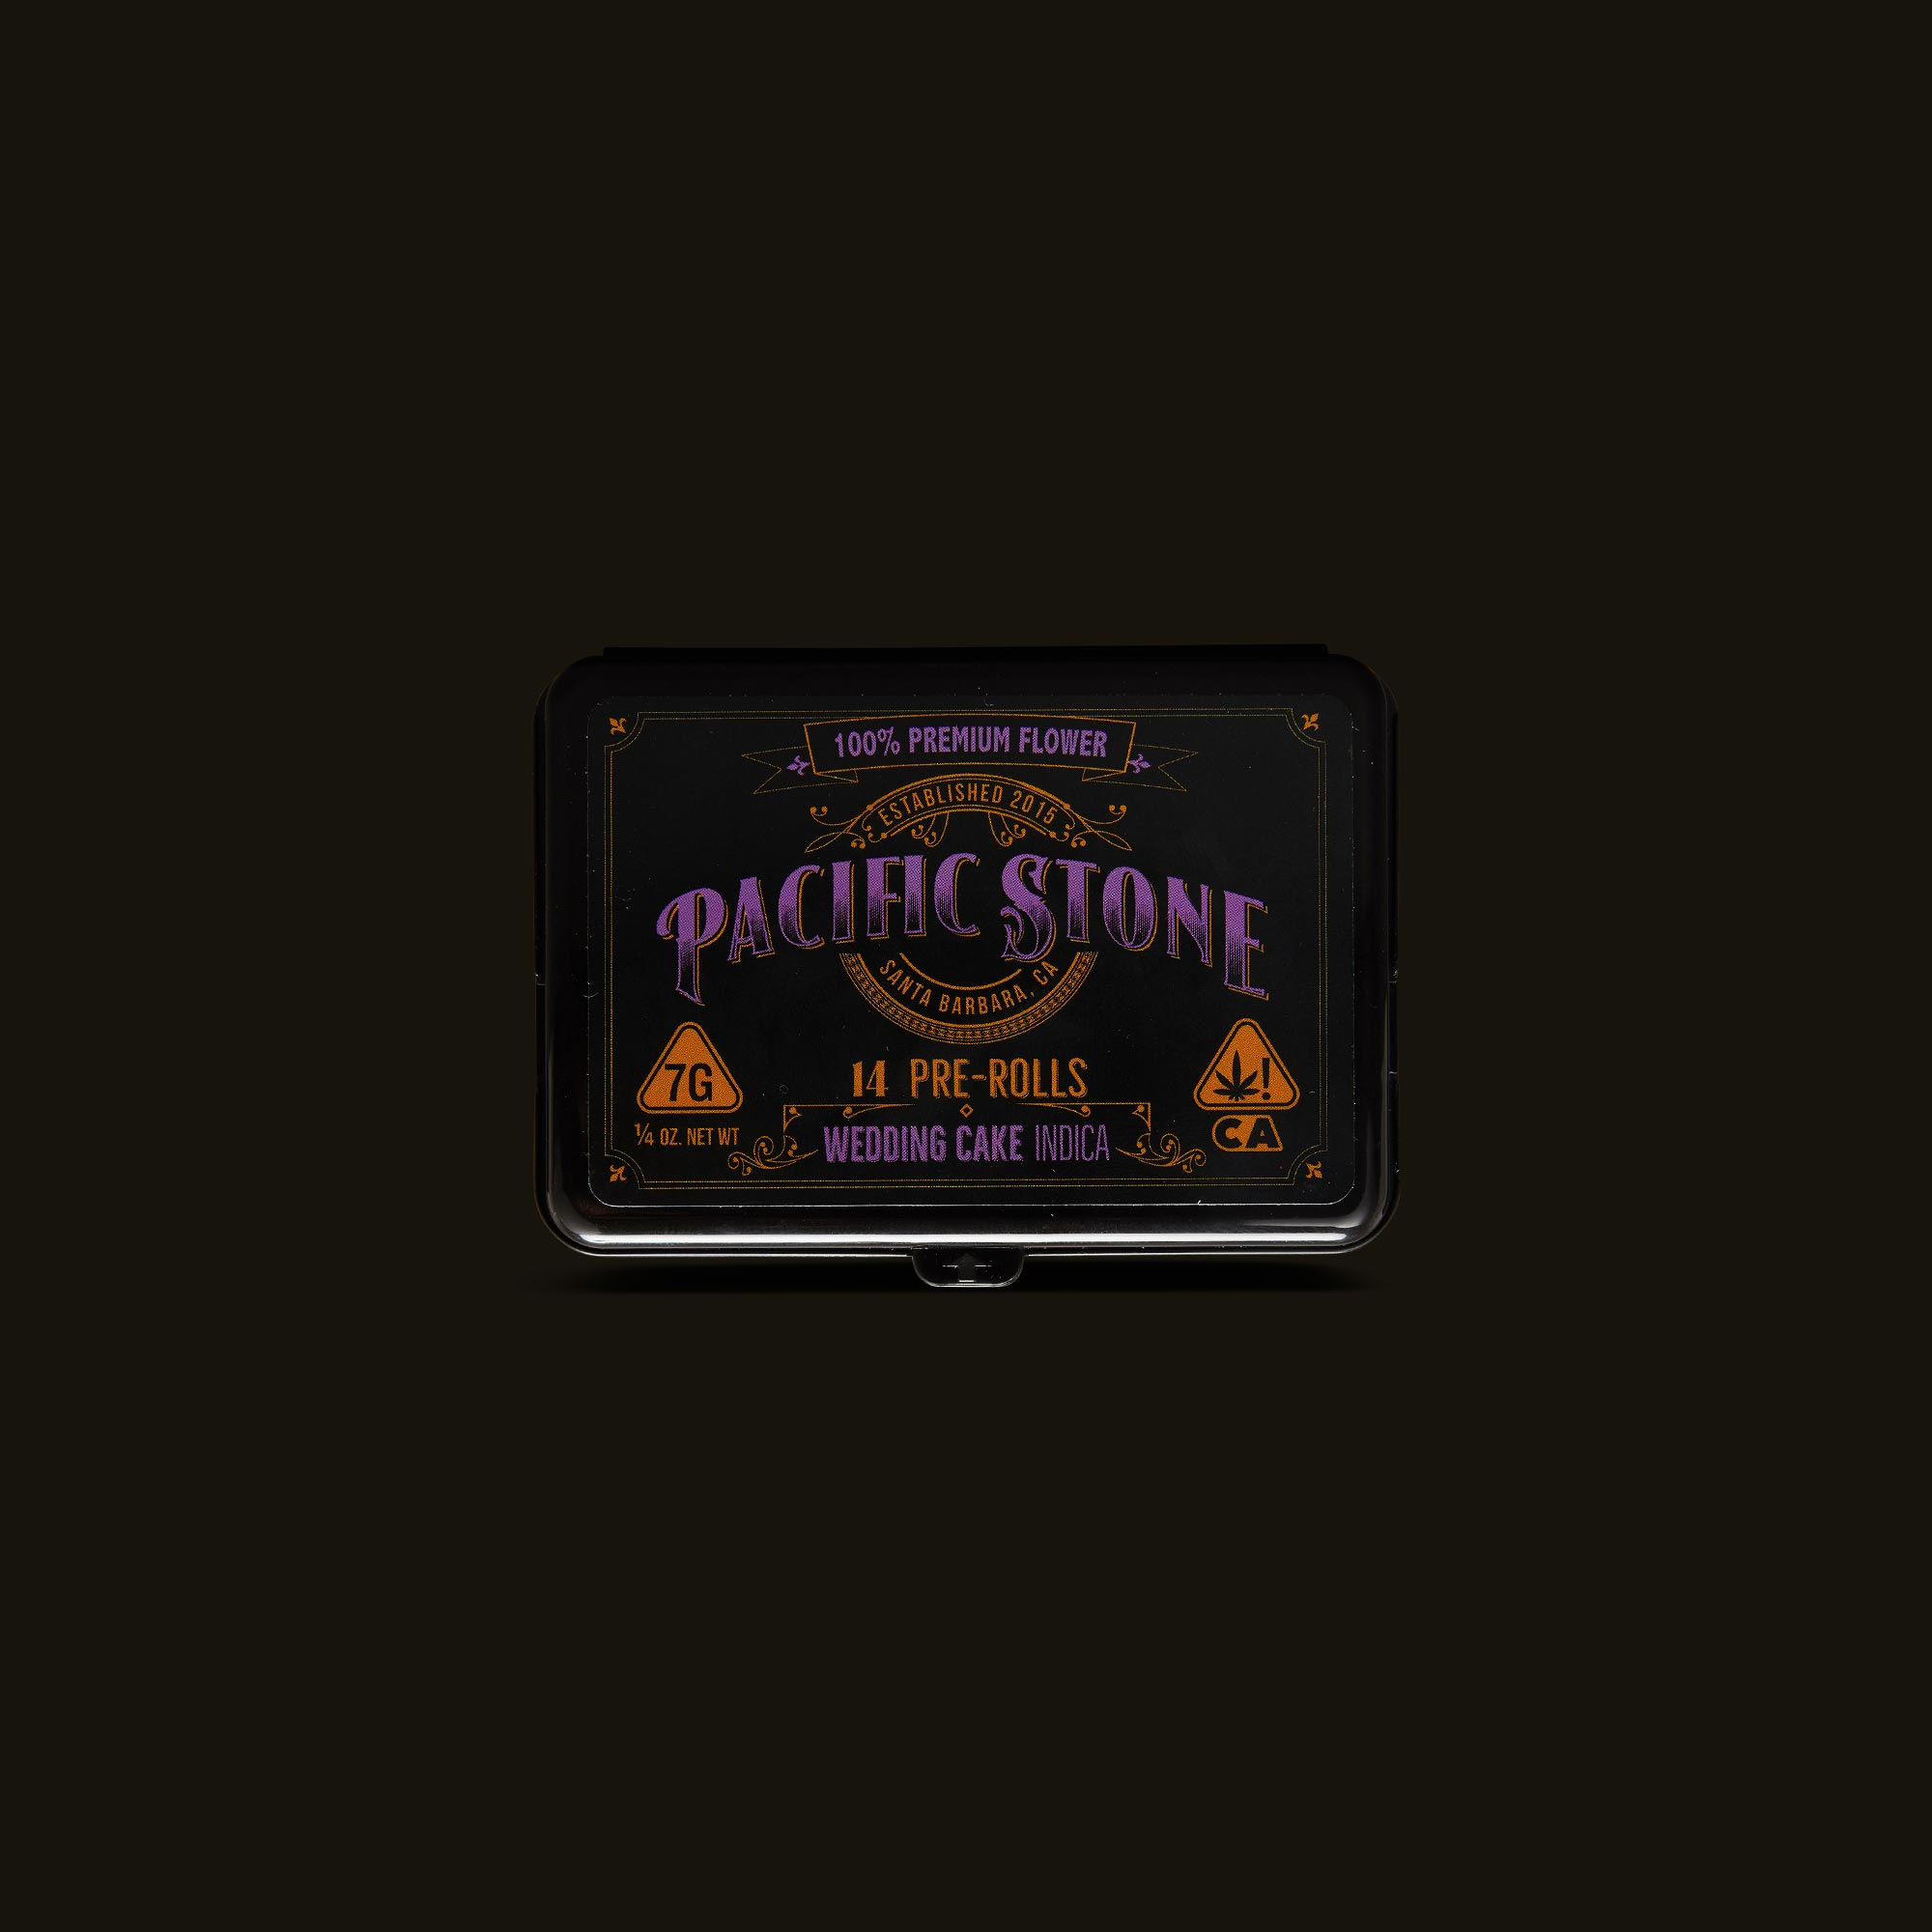 Pacific Stone Wedding Cake Pre-Roll Pack Front Packaging